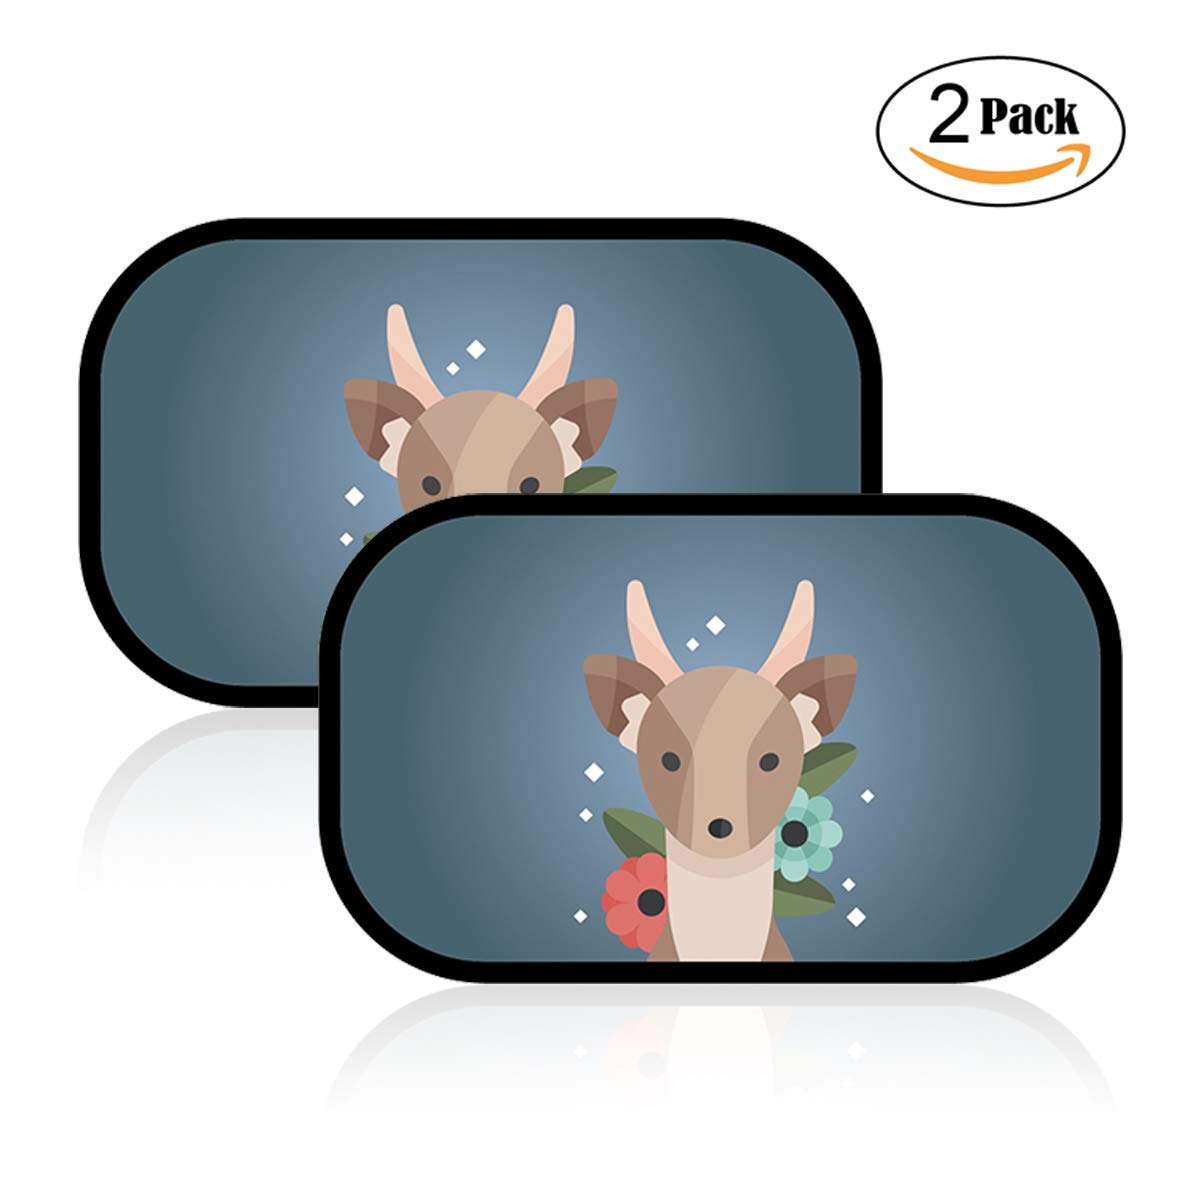 JIURUN Car Sun Shade for Kids (2 Pack)- Three layers of thickened fabric can block more than 99% of the harmful UV/sun / glare, Fits Most Cars! 50 * 30cm